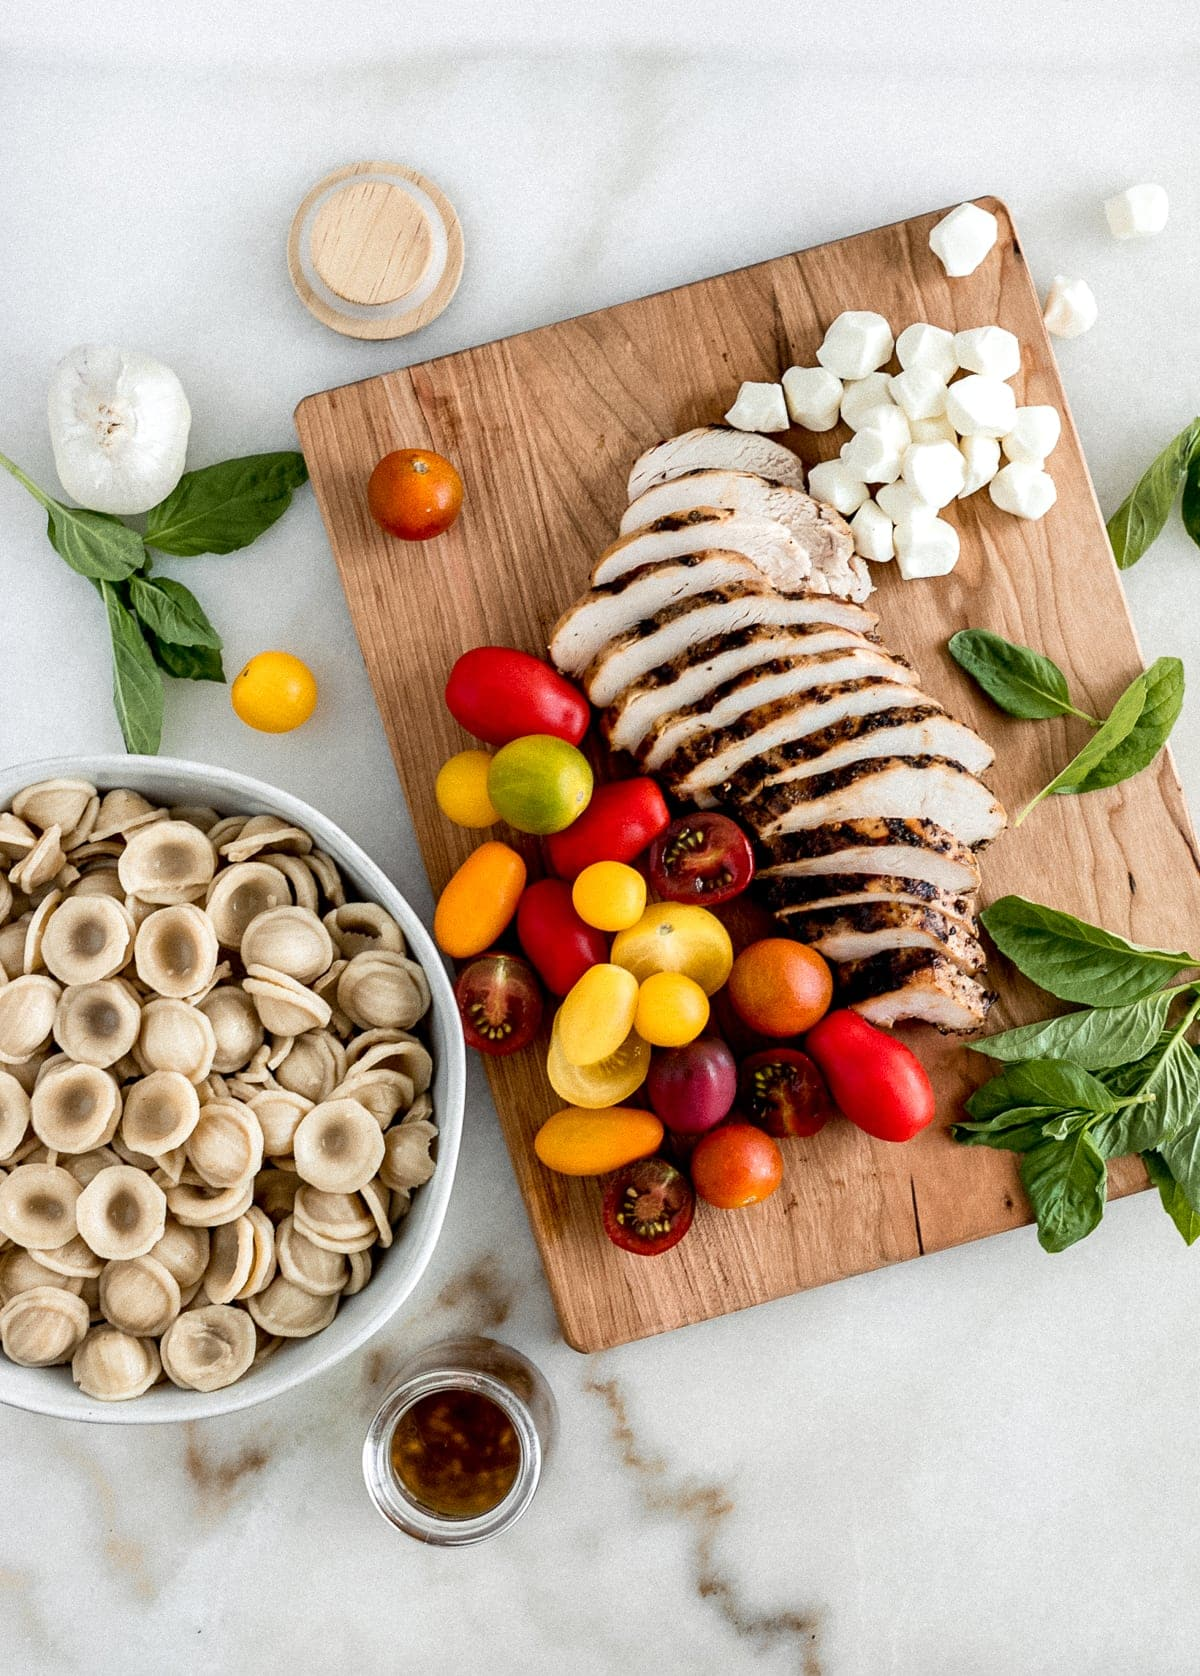 This Chicken Caprese Pasta Salad is delicious and healthy pasta salad made with tomatoes, basil, mozzarella and whole grain pasta that makes the perfect summer lunch or potluck dish! (gluten-free and vegetarian option) | via livelytable.com